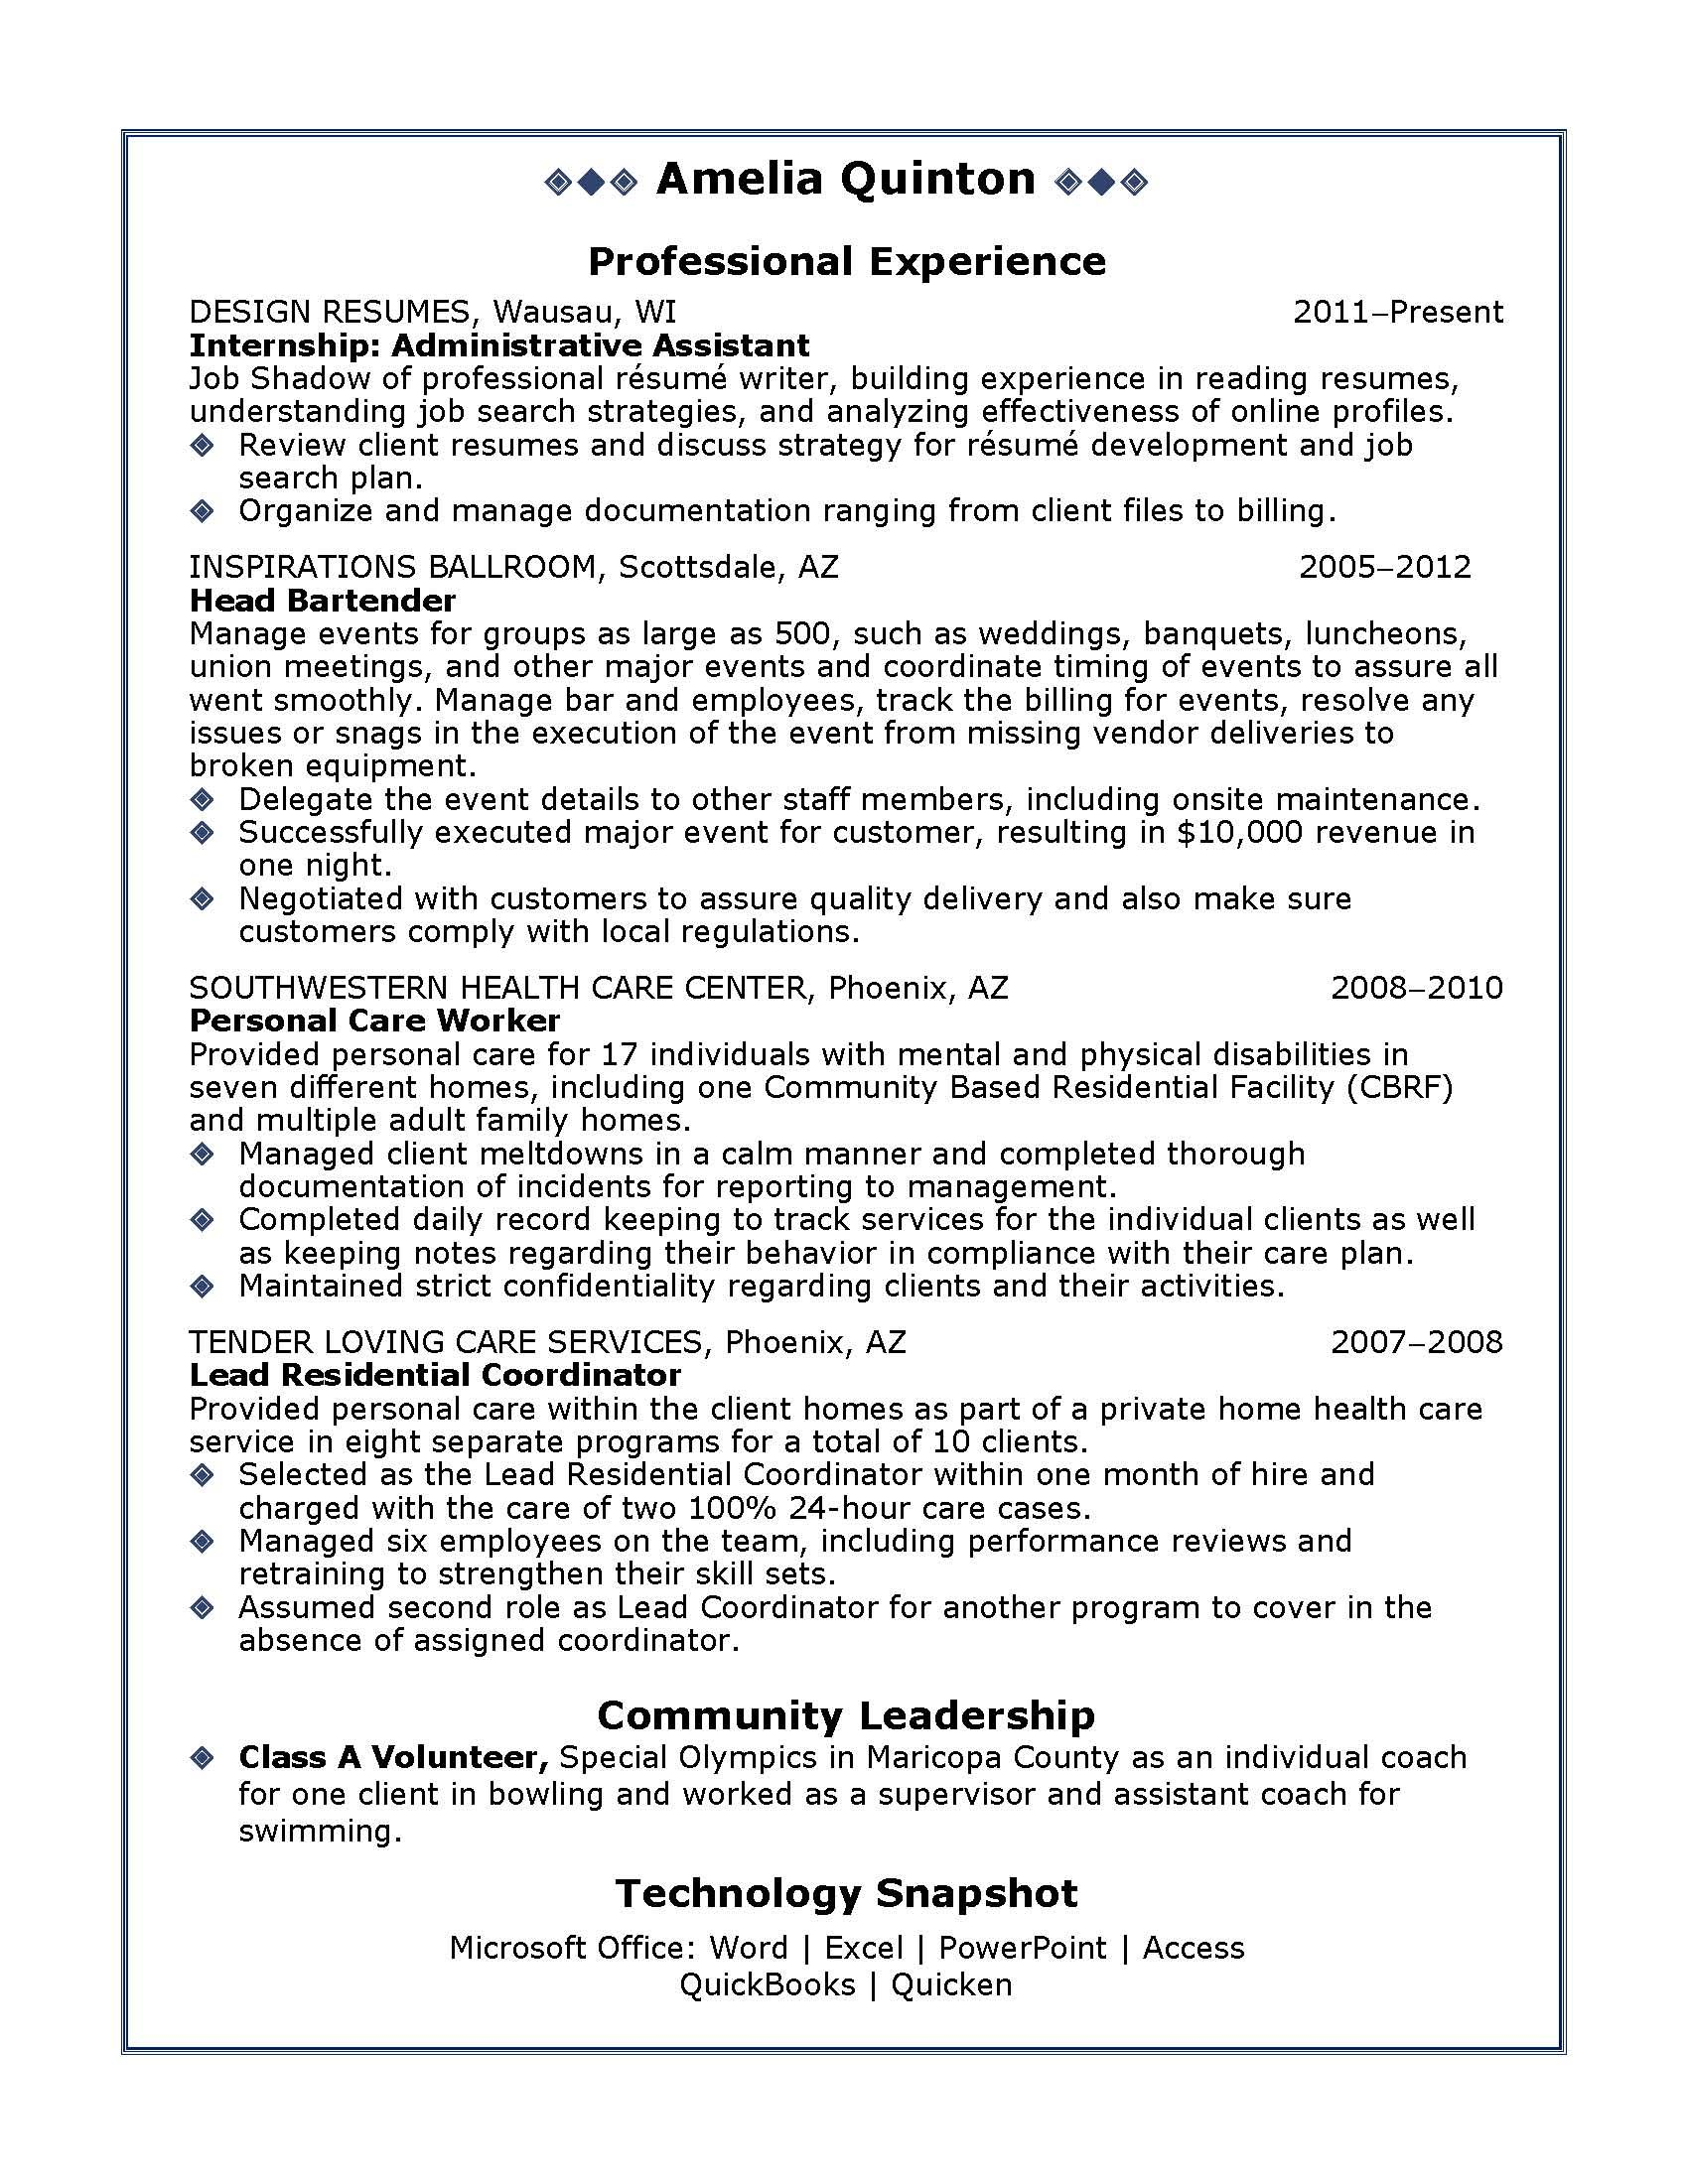 Recent College Graduate Resume Triage Nurse Resume Sample  Httpwwwresumecareertriage